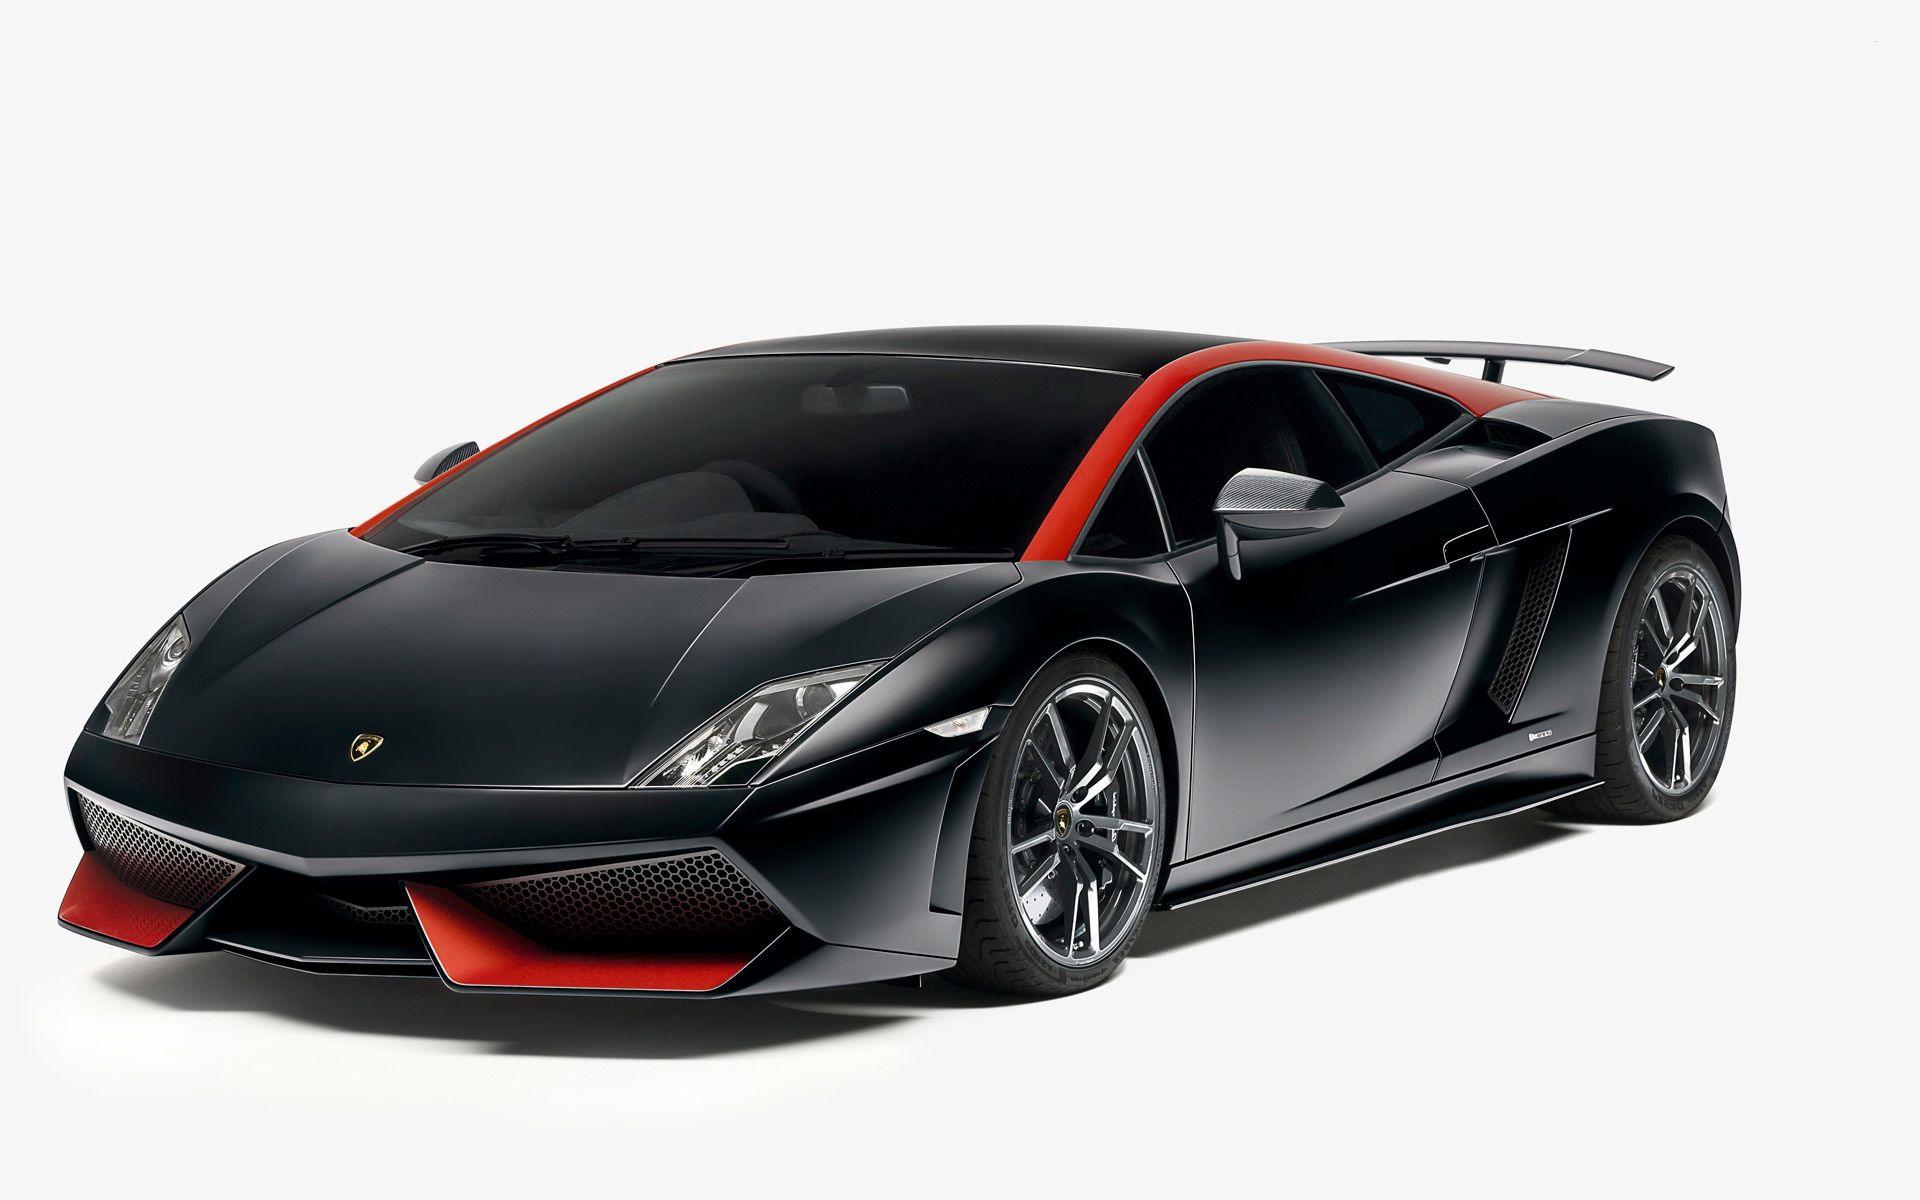 You Can Download Latest Photo Gallery Of Top 10 Most Expensive Cars